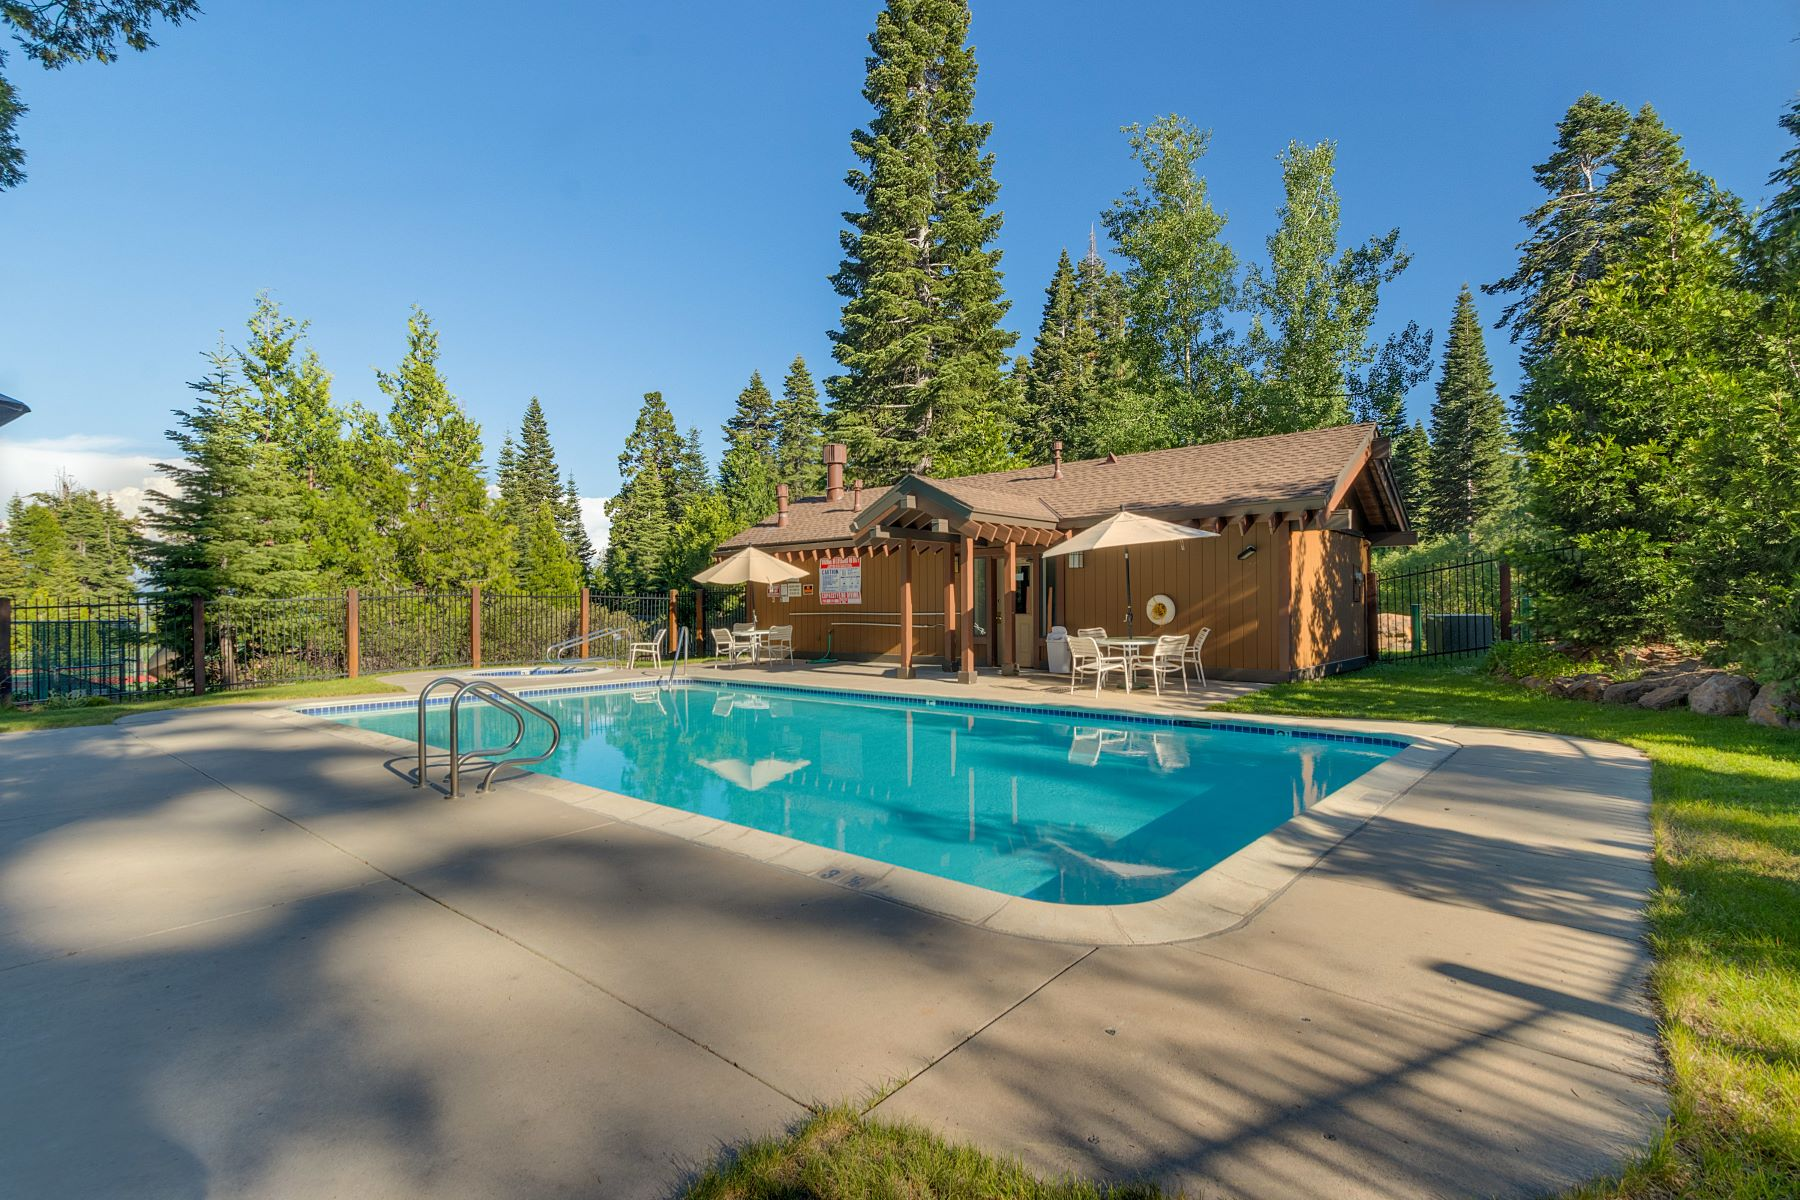 Additional photo for property listing at 1877 North Lake Blvd. #49 1877 North Lake Blvd #49 Tahoe City, California 96145 United States